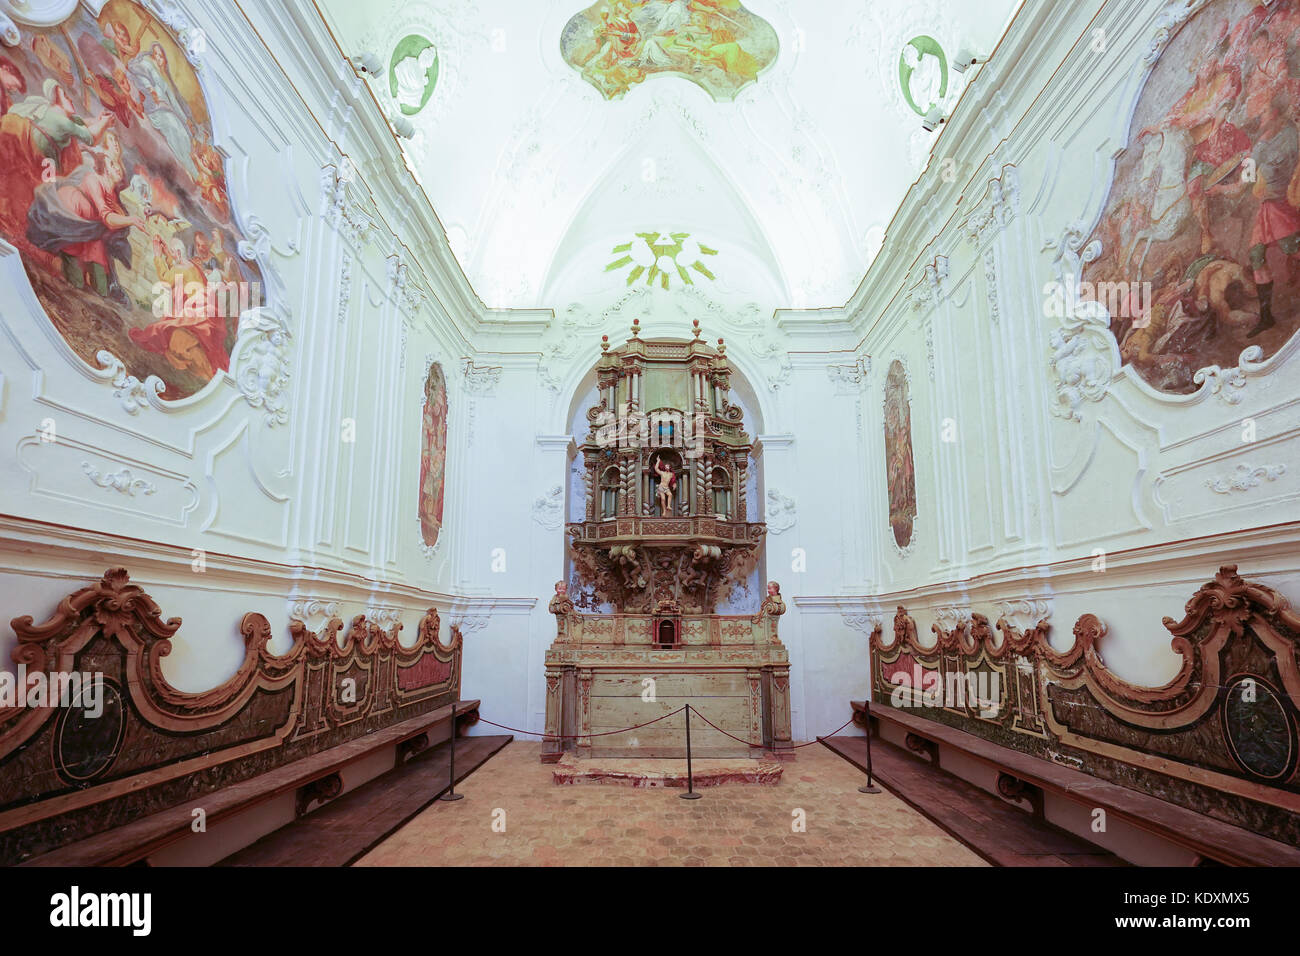 A chapel inside the San Martino church in the hill-top town of Erice. From a series of travel photos in Sicily, - Stock Image